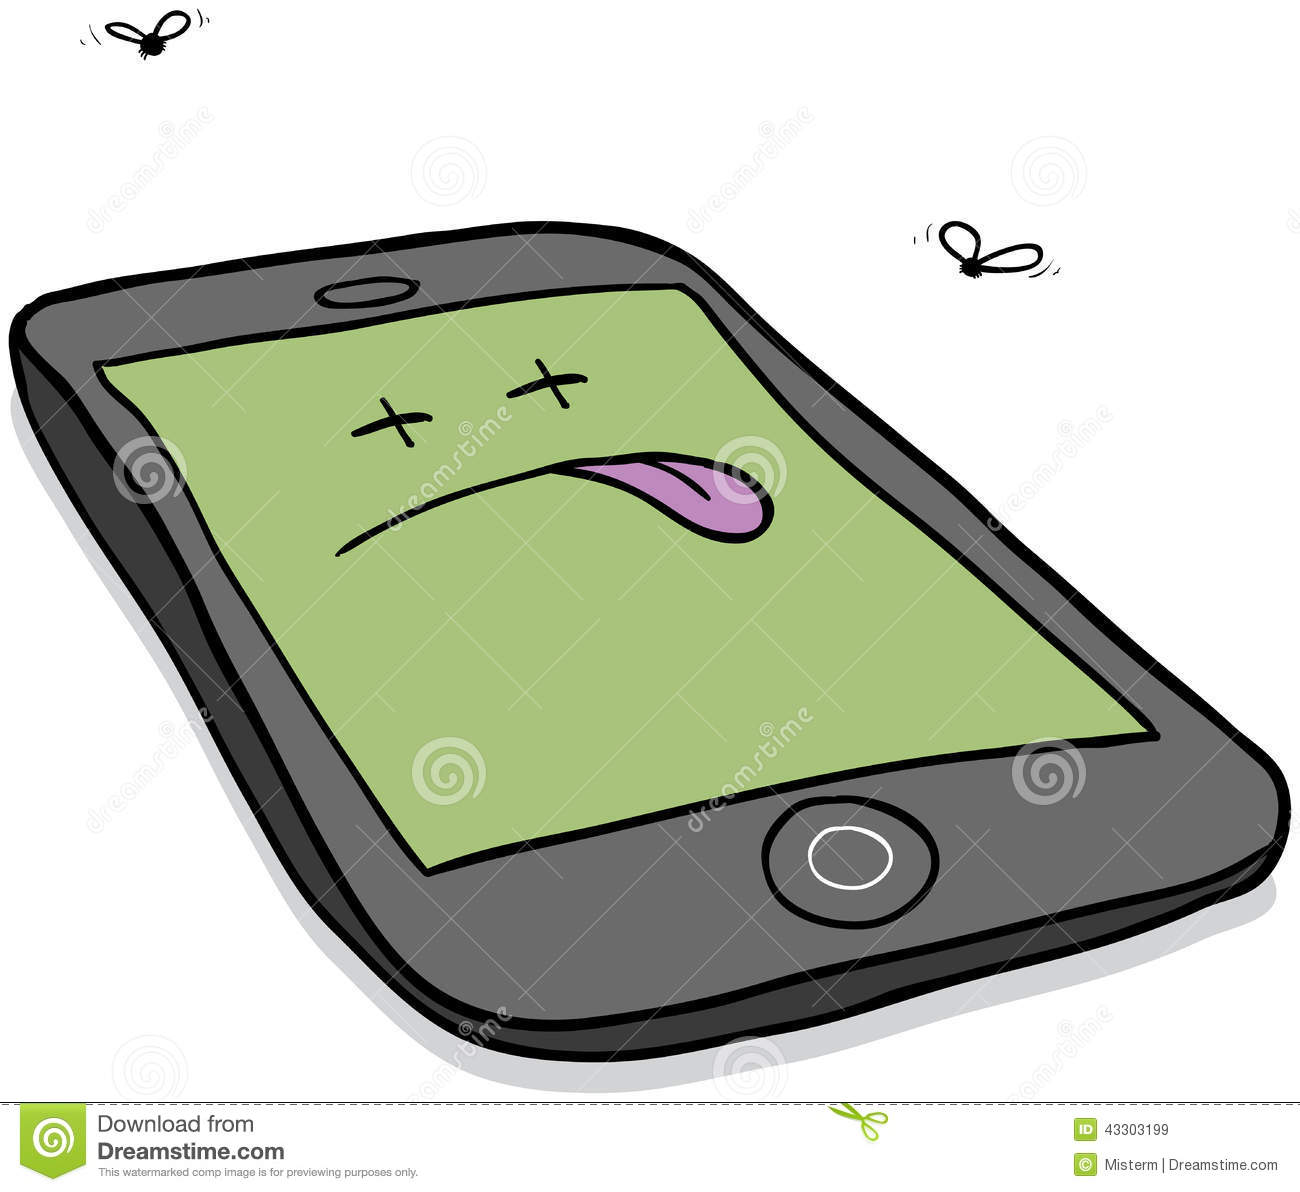 Cartoon Illustration Of A Deceased Smartphone In Need Of Repair Or